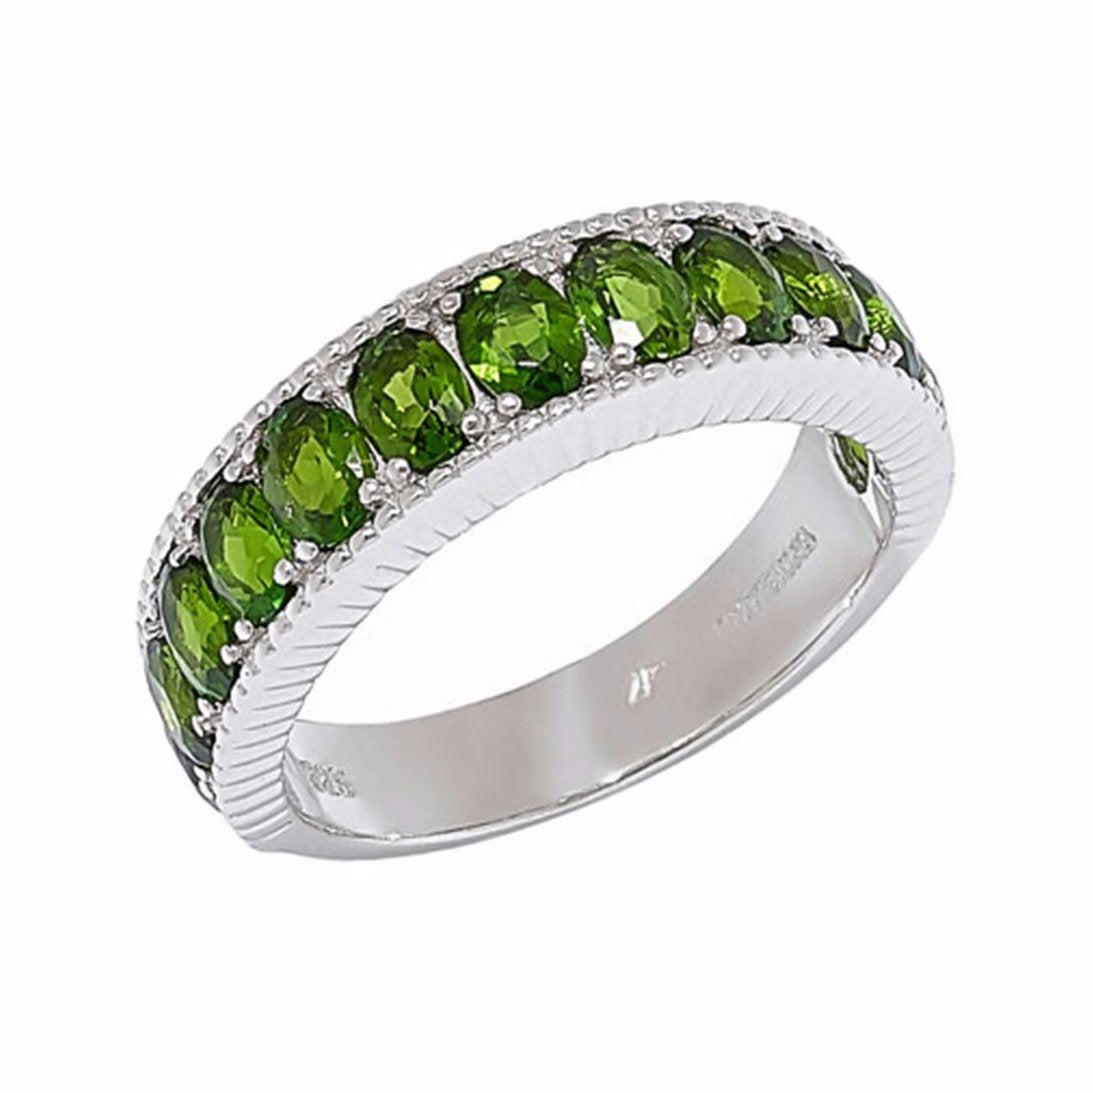 Chrome Diopside Green Gemstone Band Ring